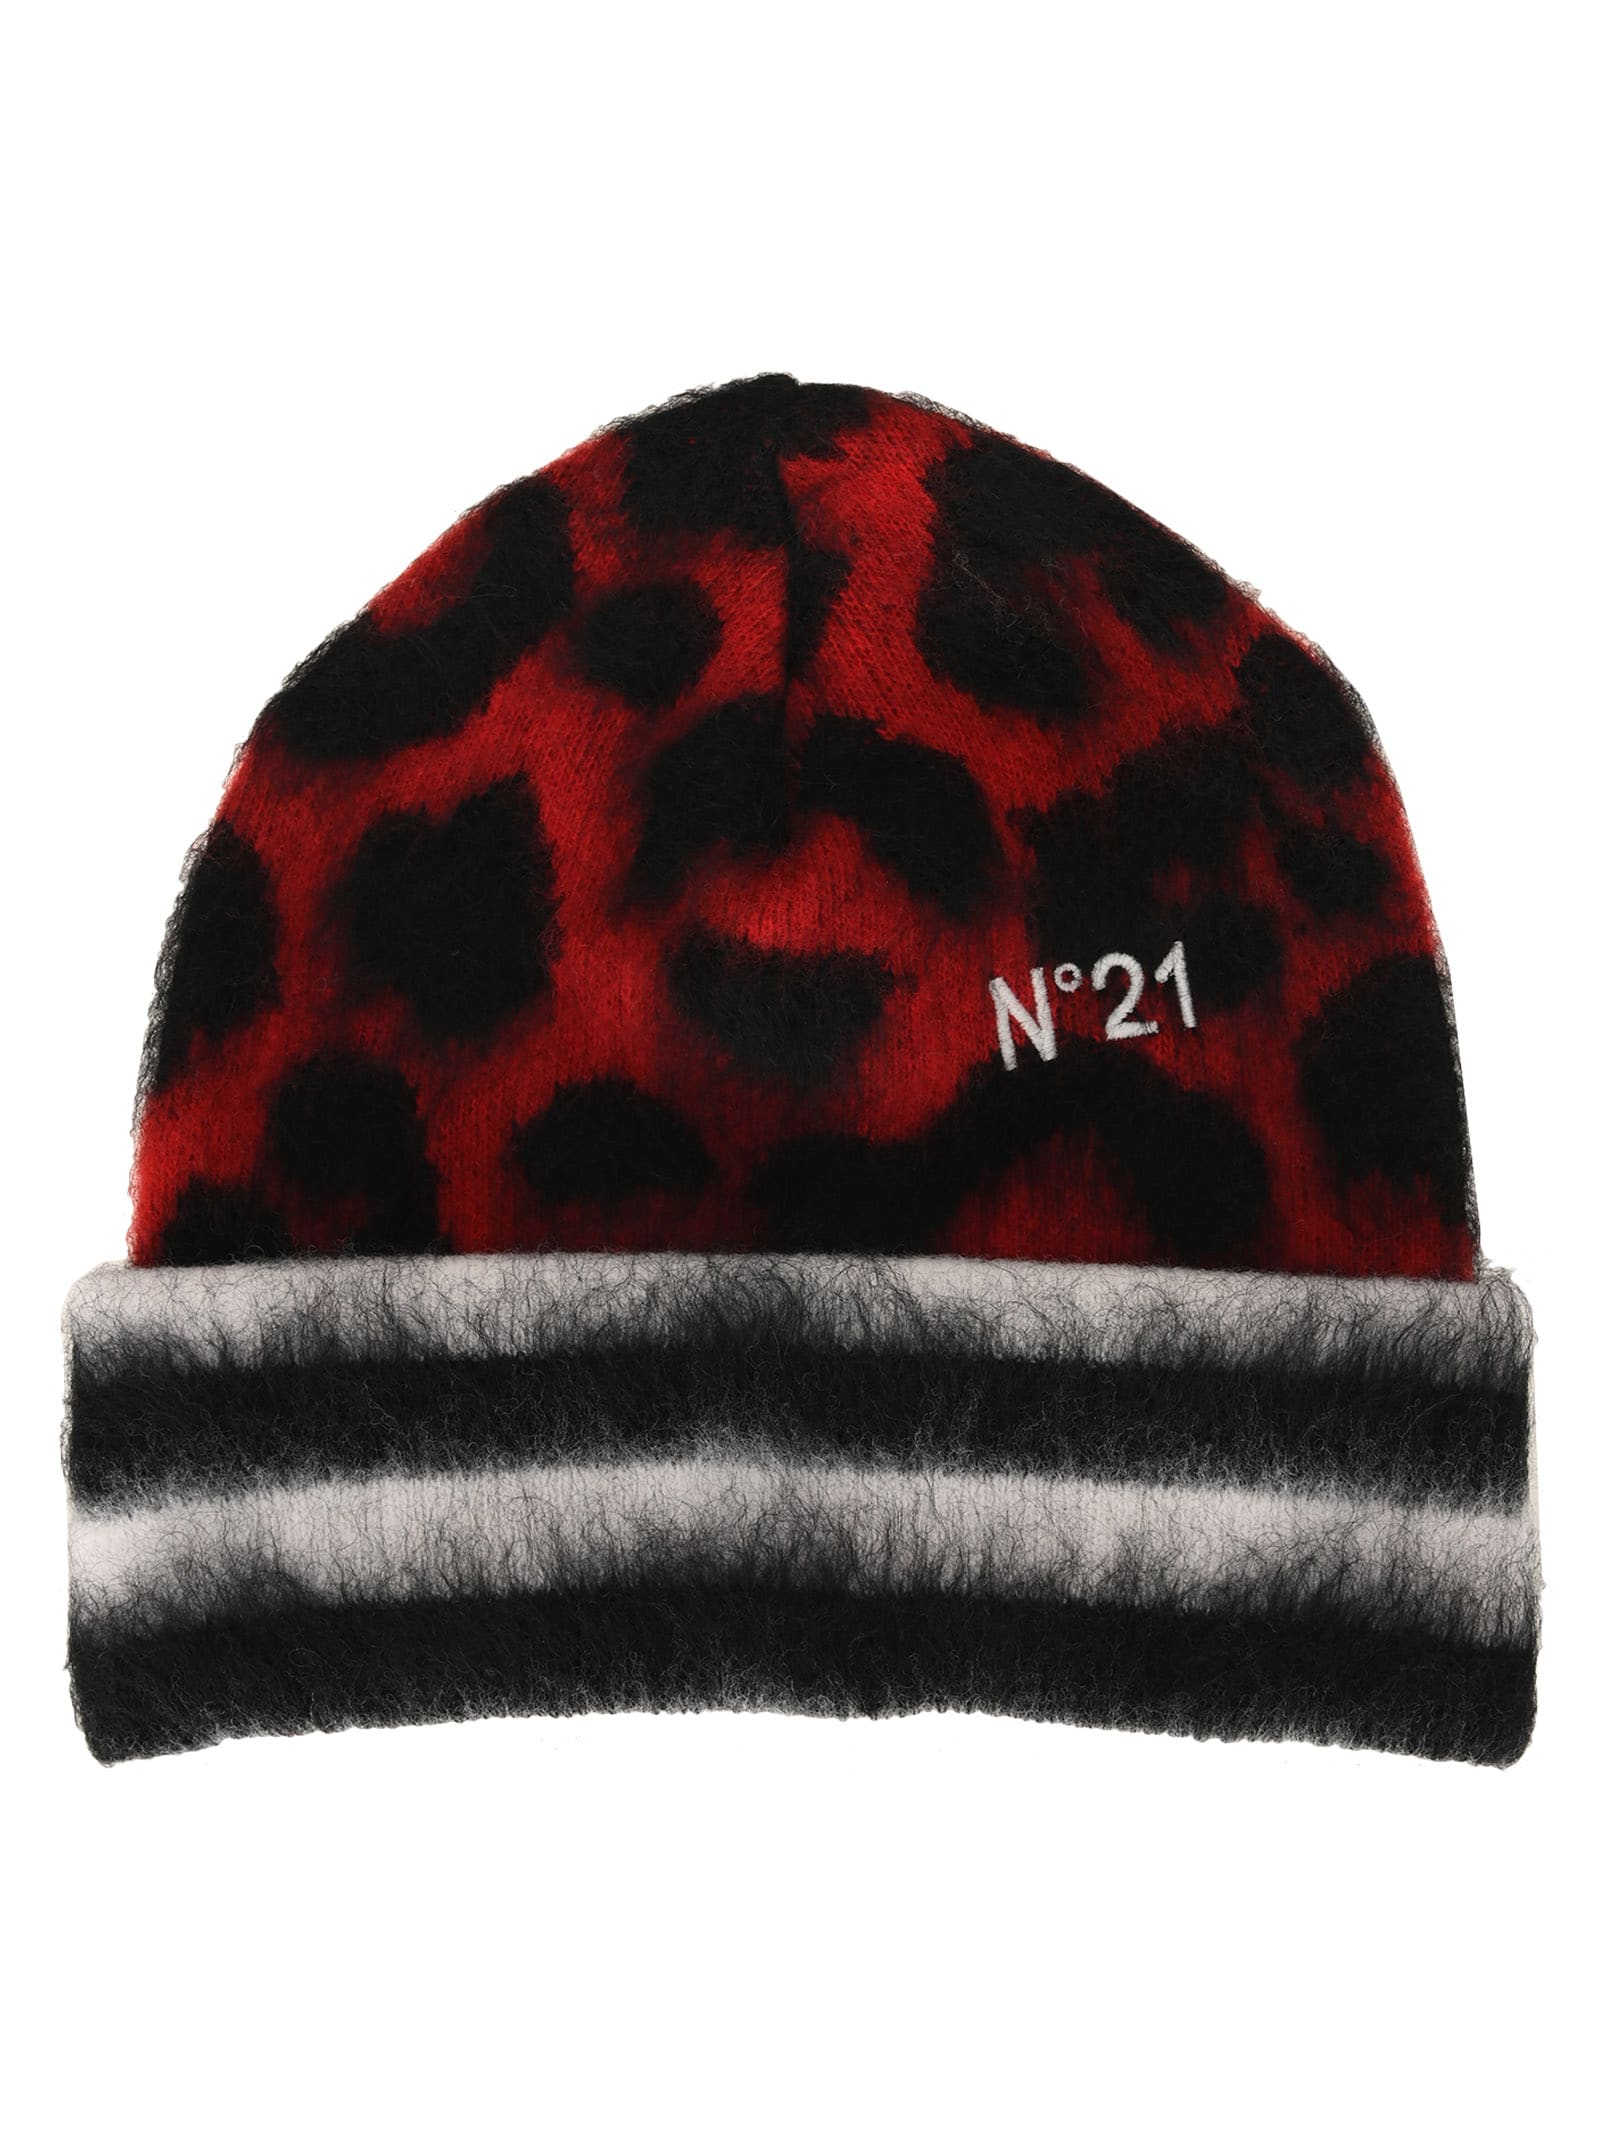 Red, Black And White, Wool And Mohair Blend Leopard-print Beanie By N°21. Featuring: - Striped Turn-up Hem; - Leopard Print; - Embroidered Logo. Composition: 56% WOOL, 24% MOHAIR, 20% POLYAMIDE